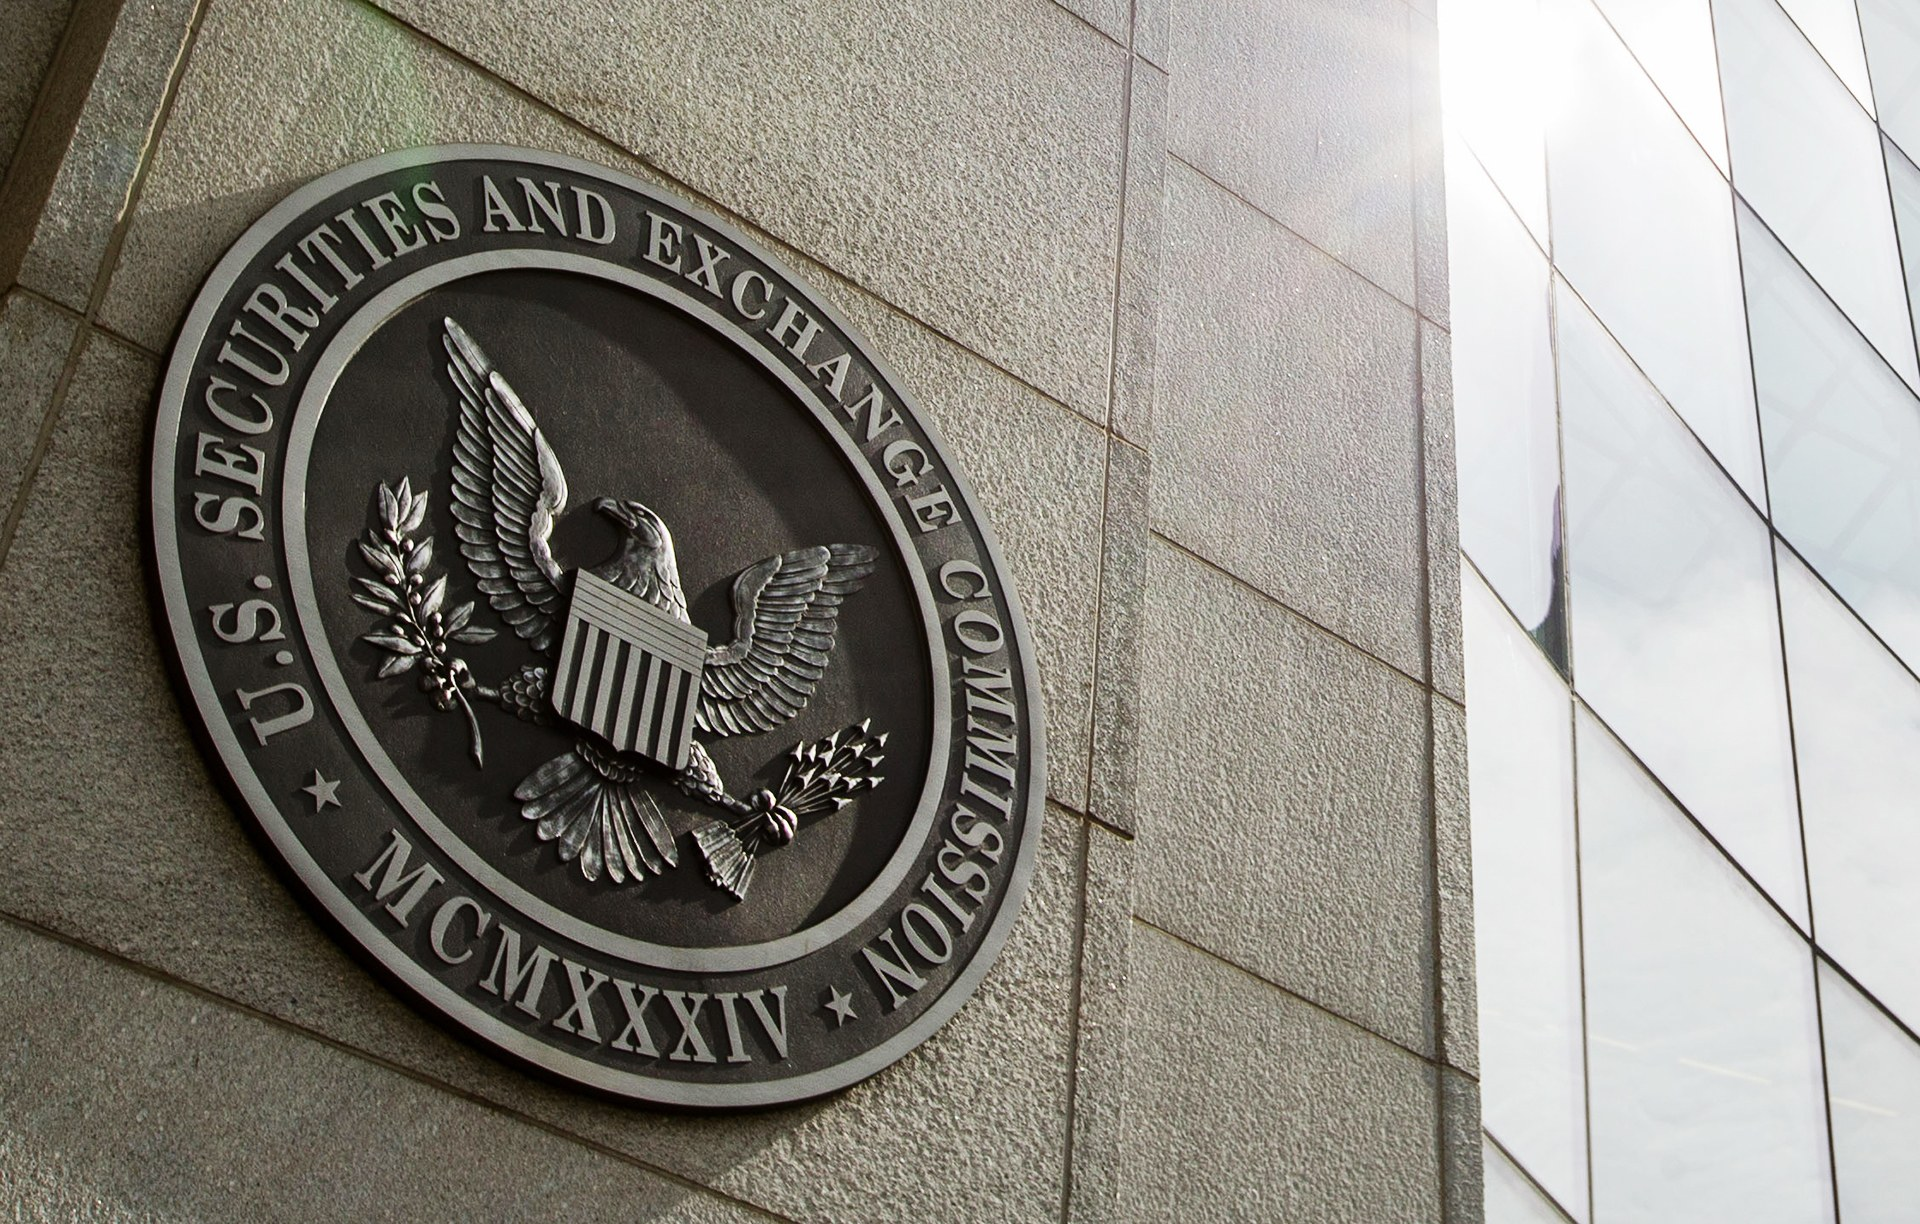 THE SEC CONSIDERS CRYPTO A 2020 PRIORITY